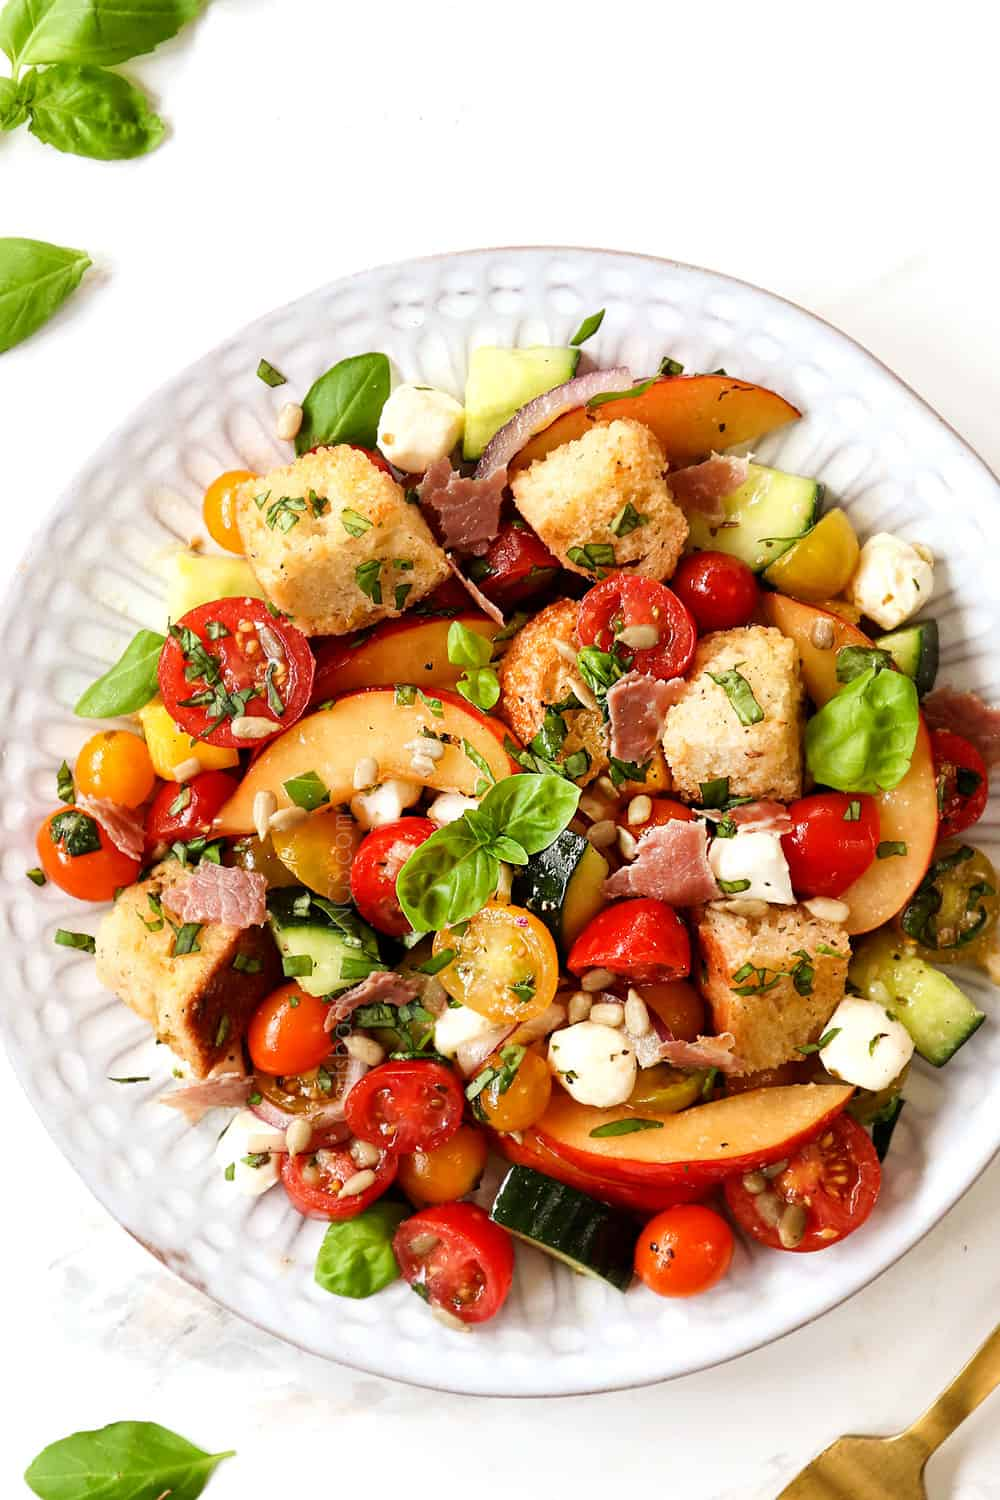 Panzanella salad on a white serving plate garnished with salt and pepper, soaked in red wine vinaigrette